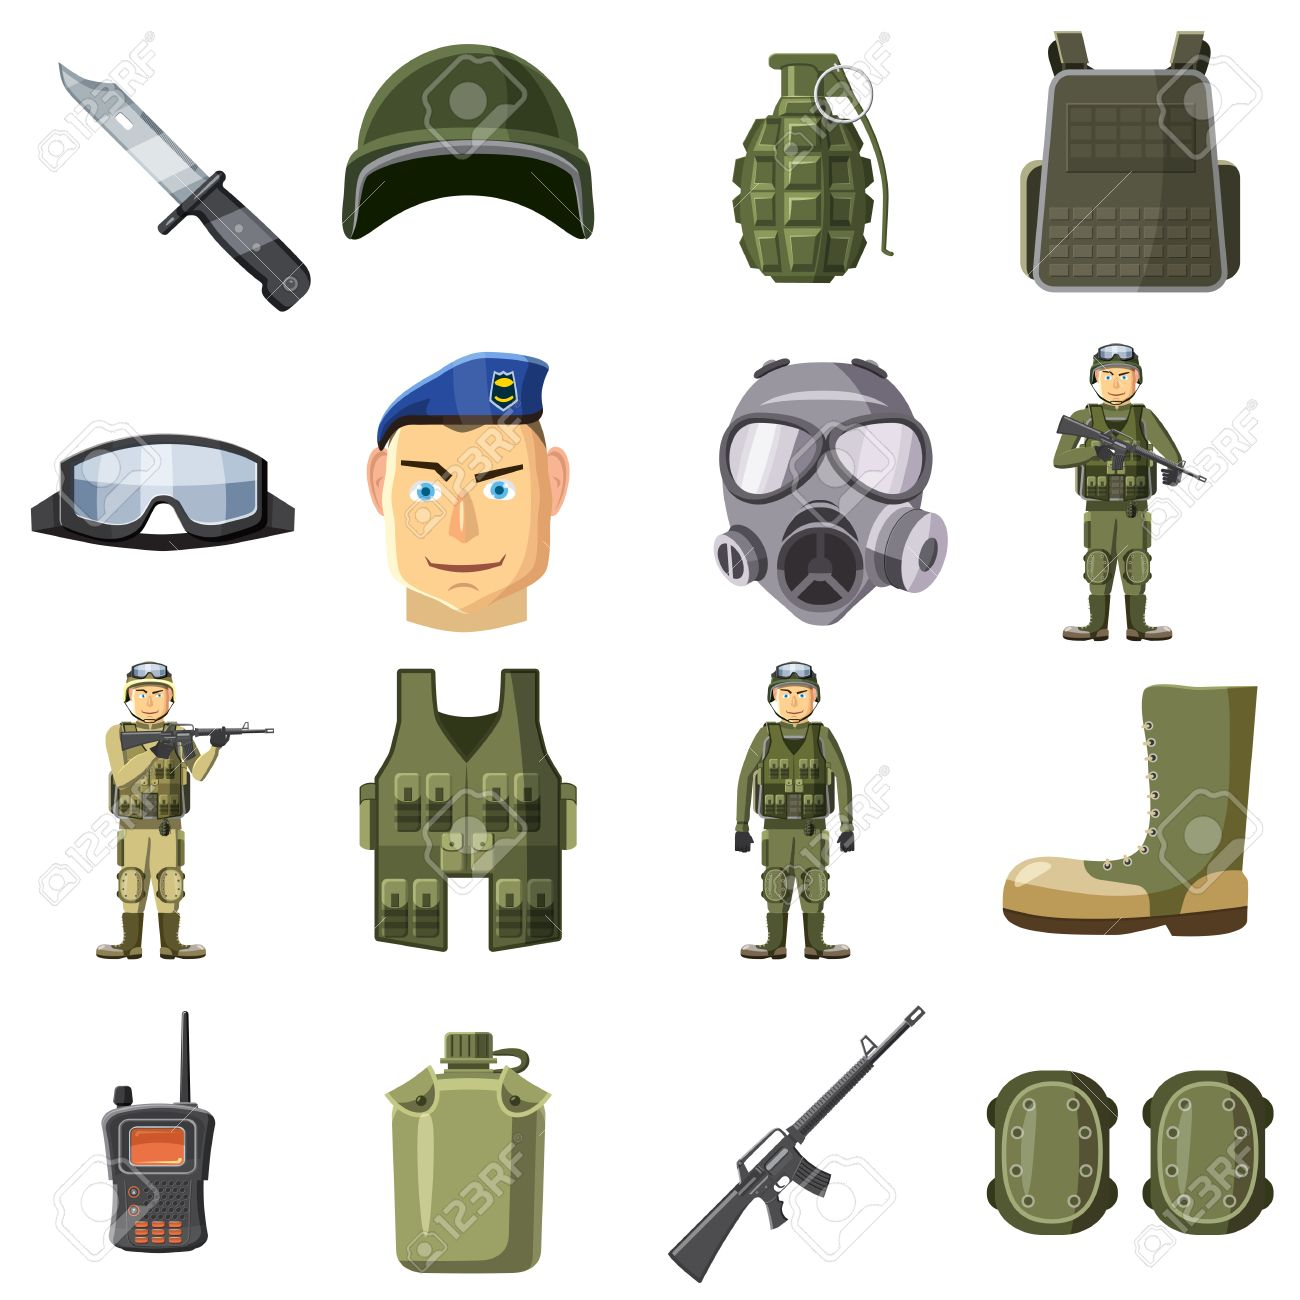 Army Equipment Clipart.